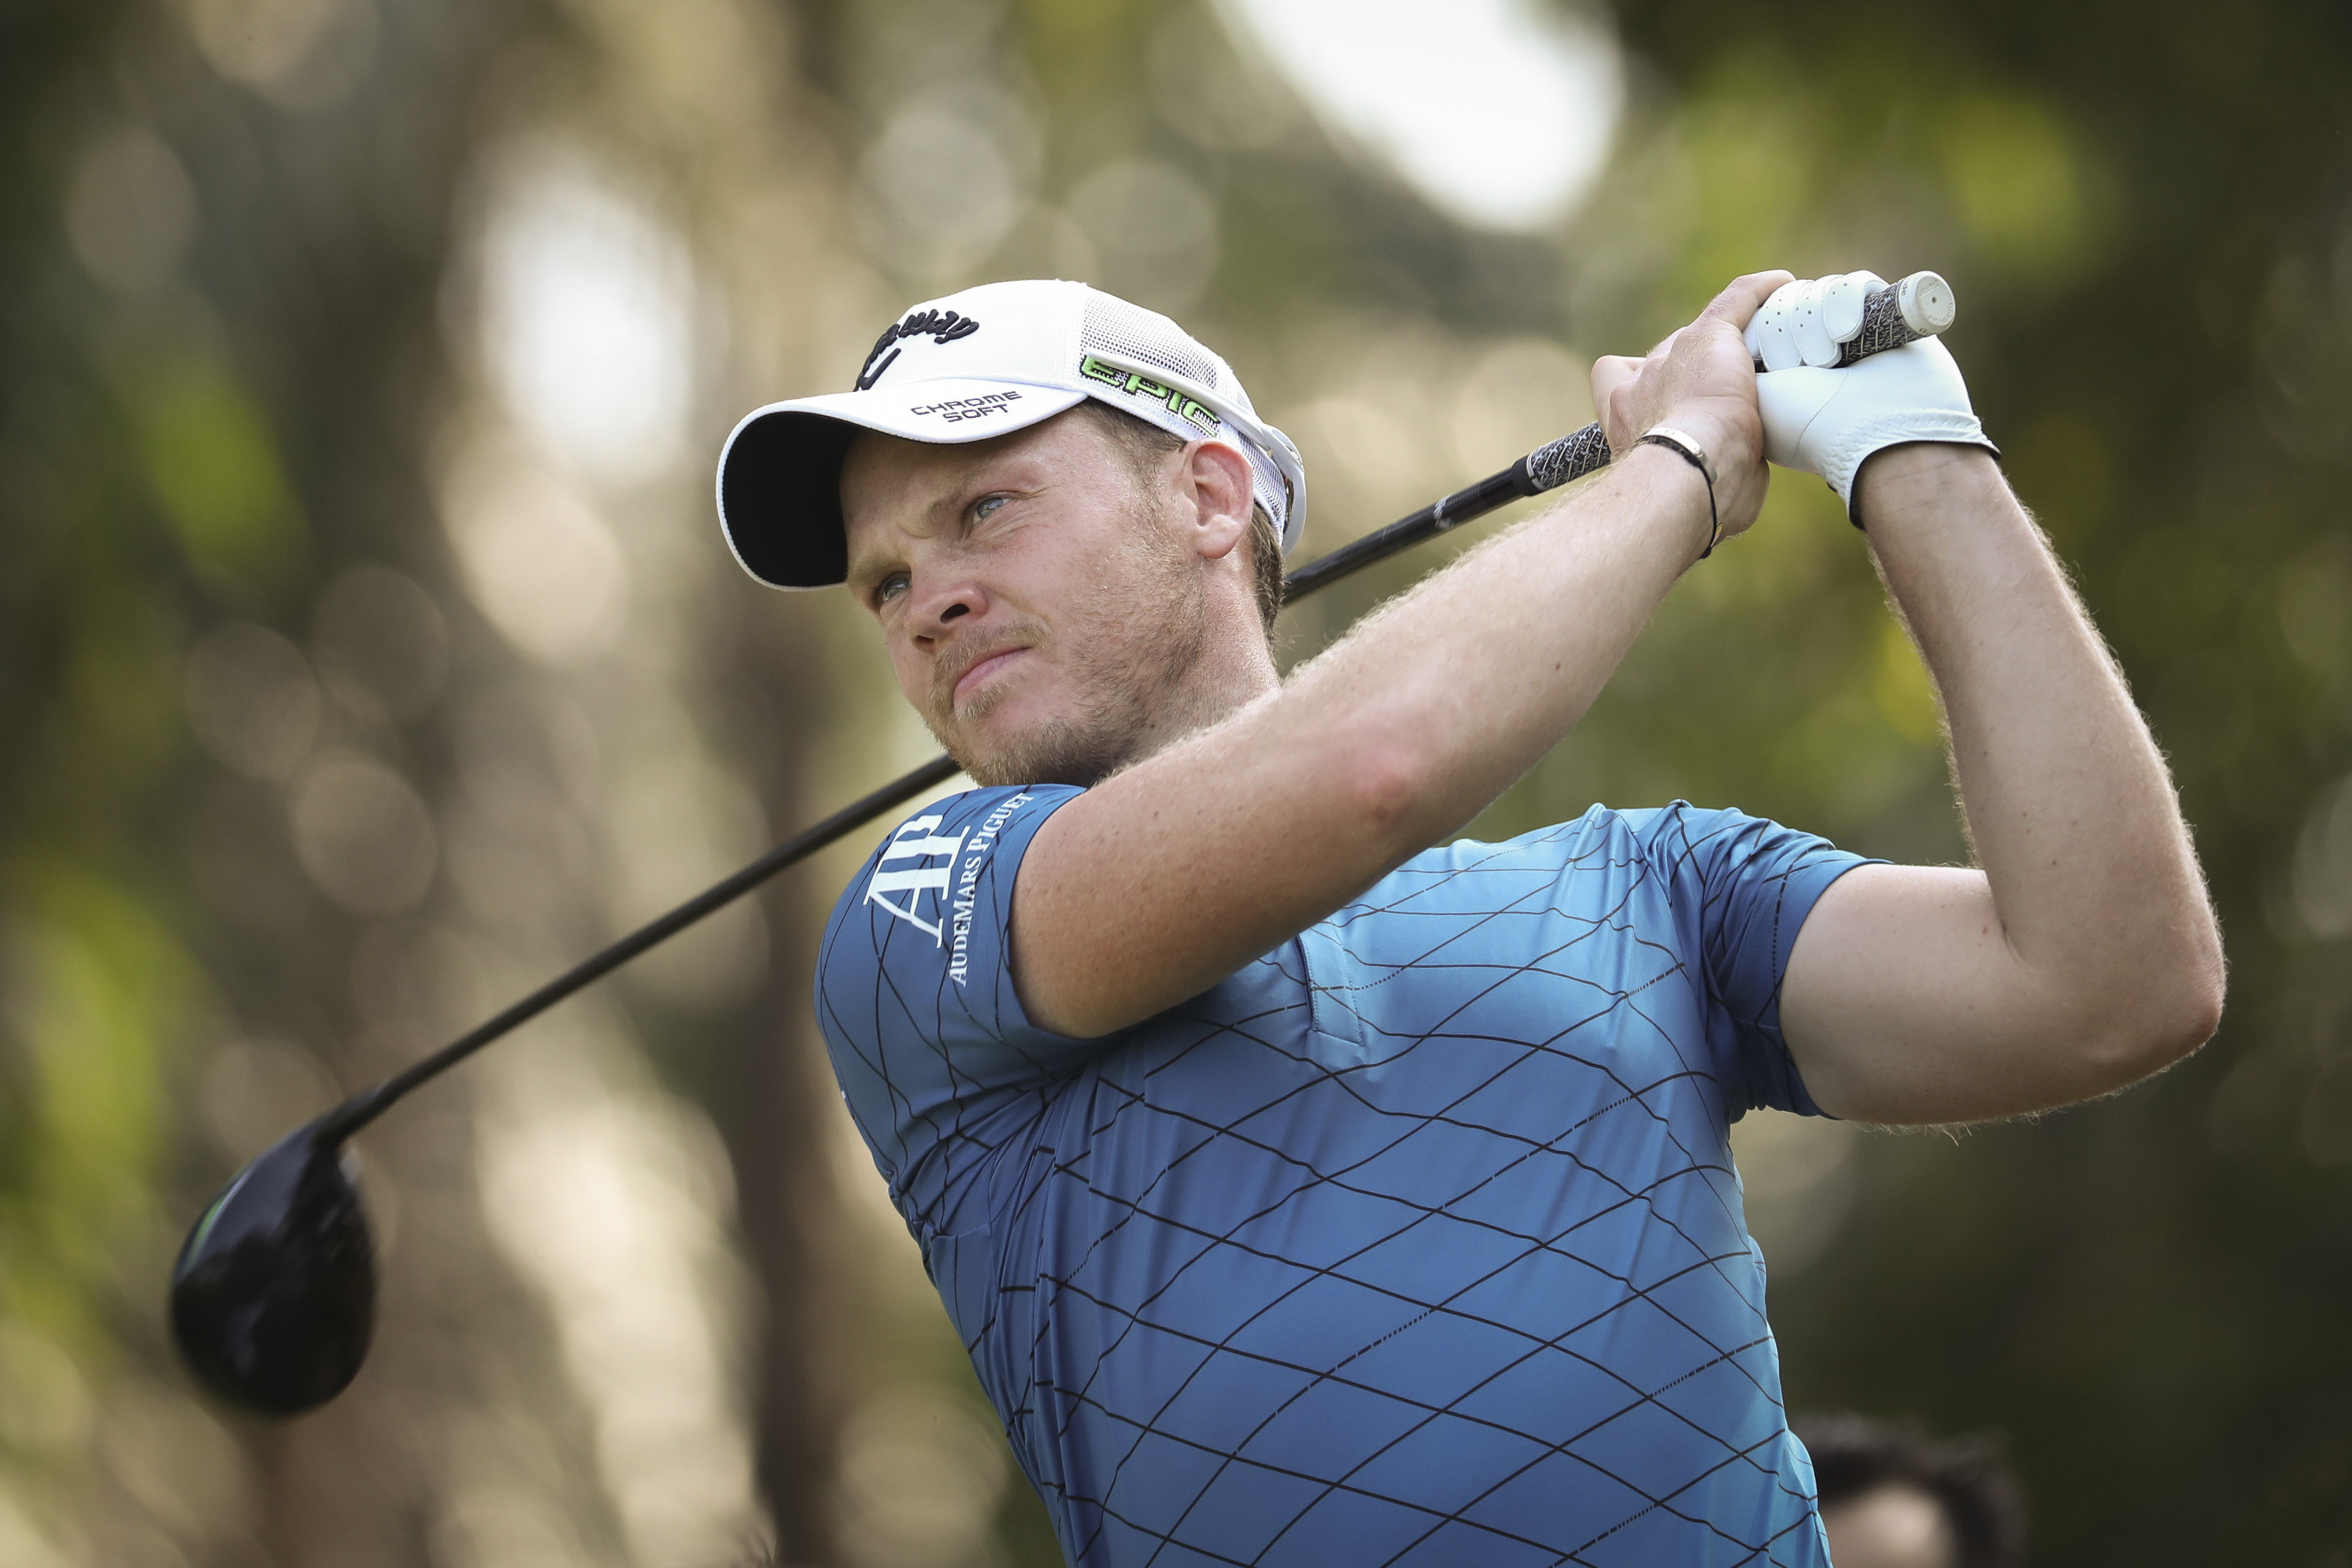 Danny Willet of England follows his shot on the sixteenth hole during the first day of Maybank Championship golf tournament in Kuala Lumpur, Malaysia on Thursday, Feb. 9, 2017. (AP Photo/Vincent Thian)